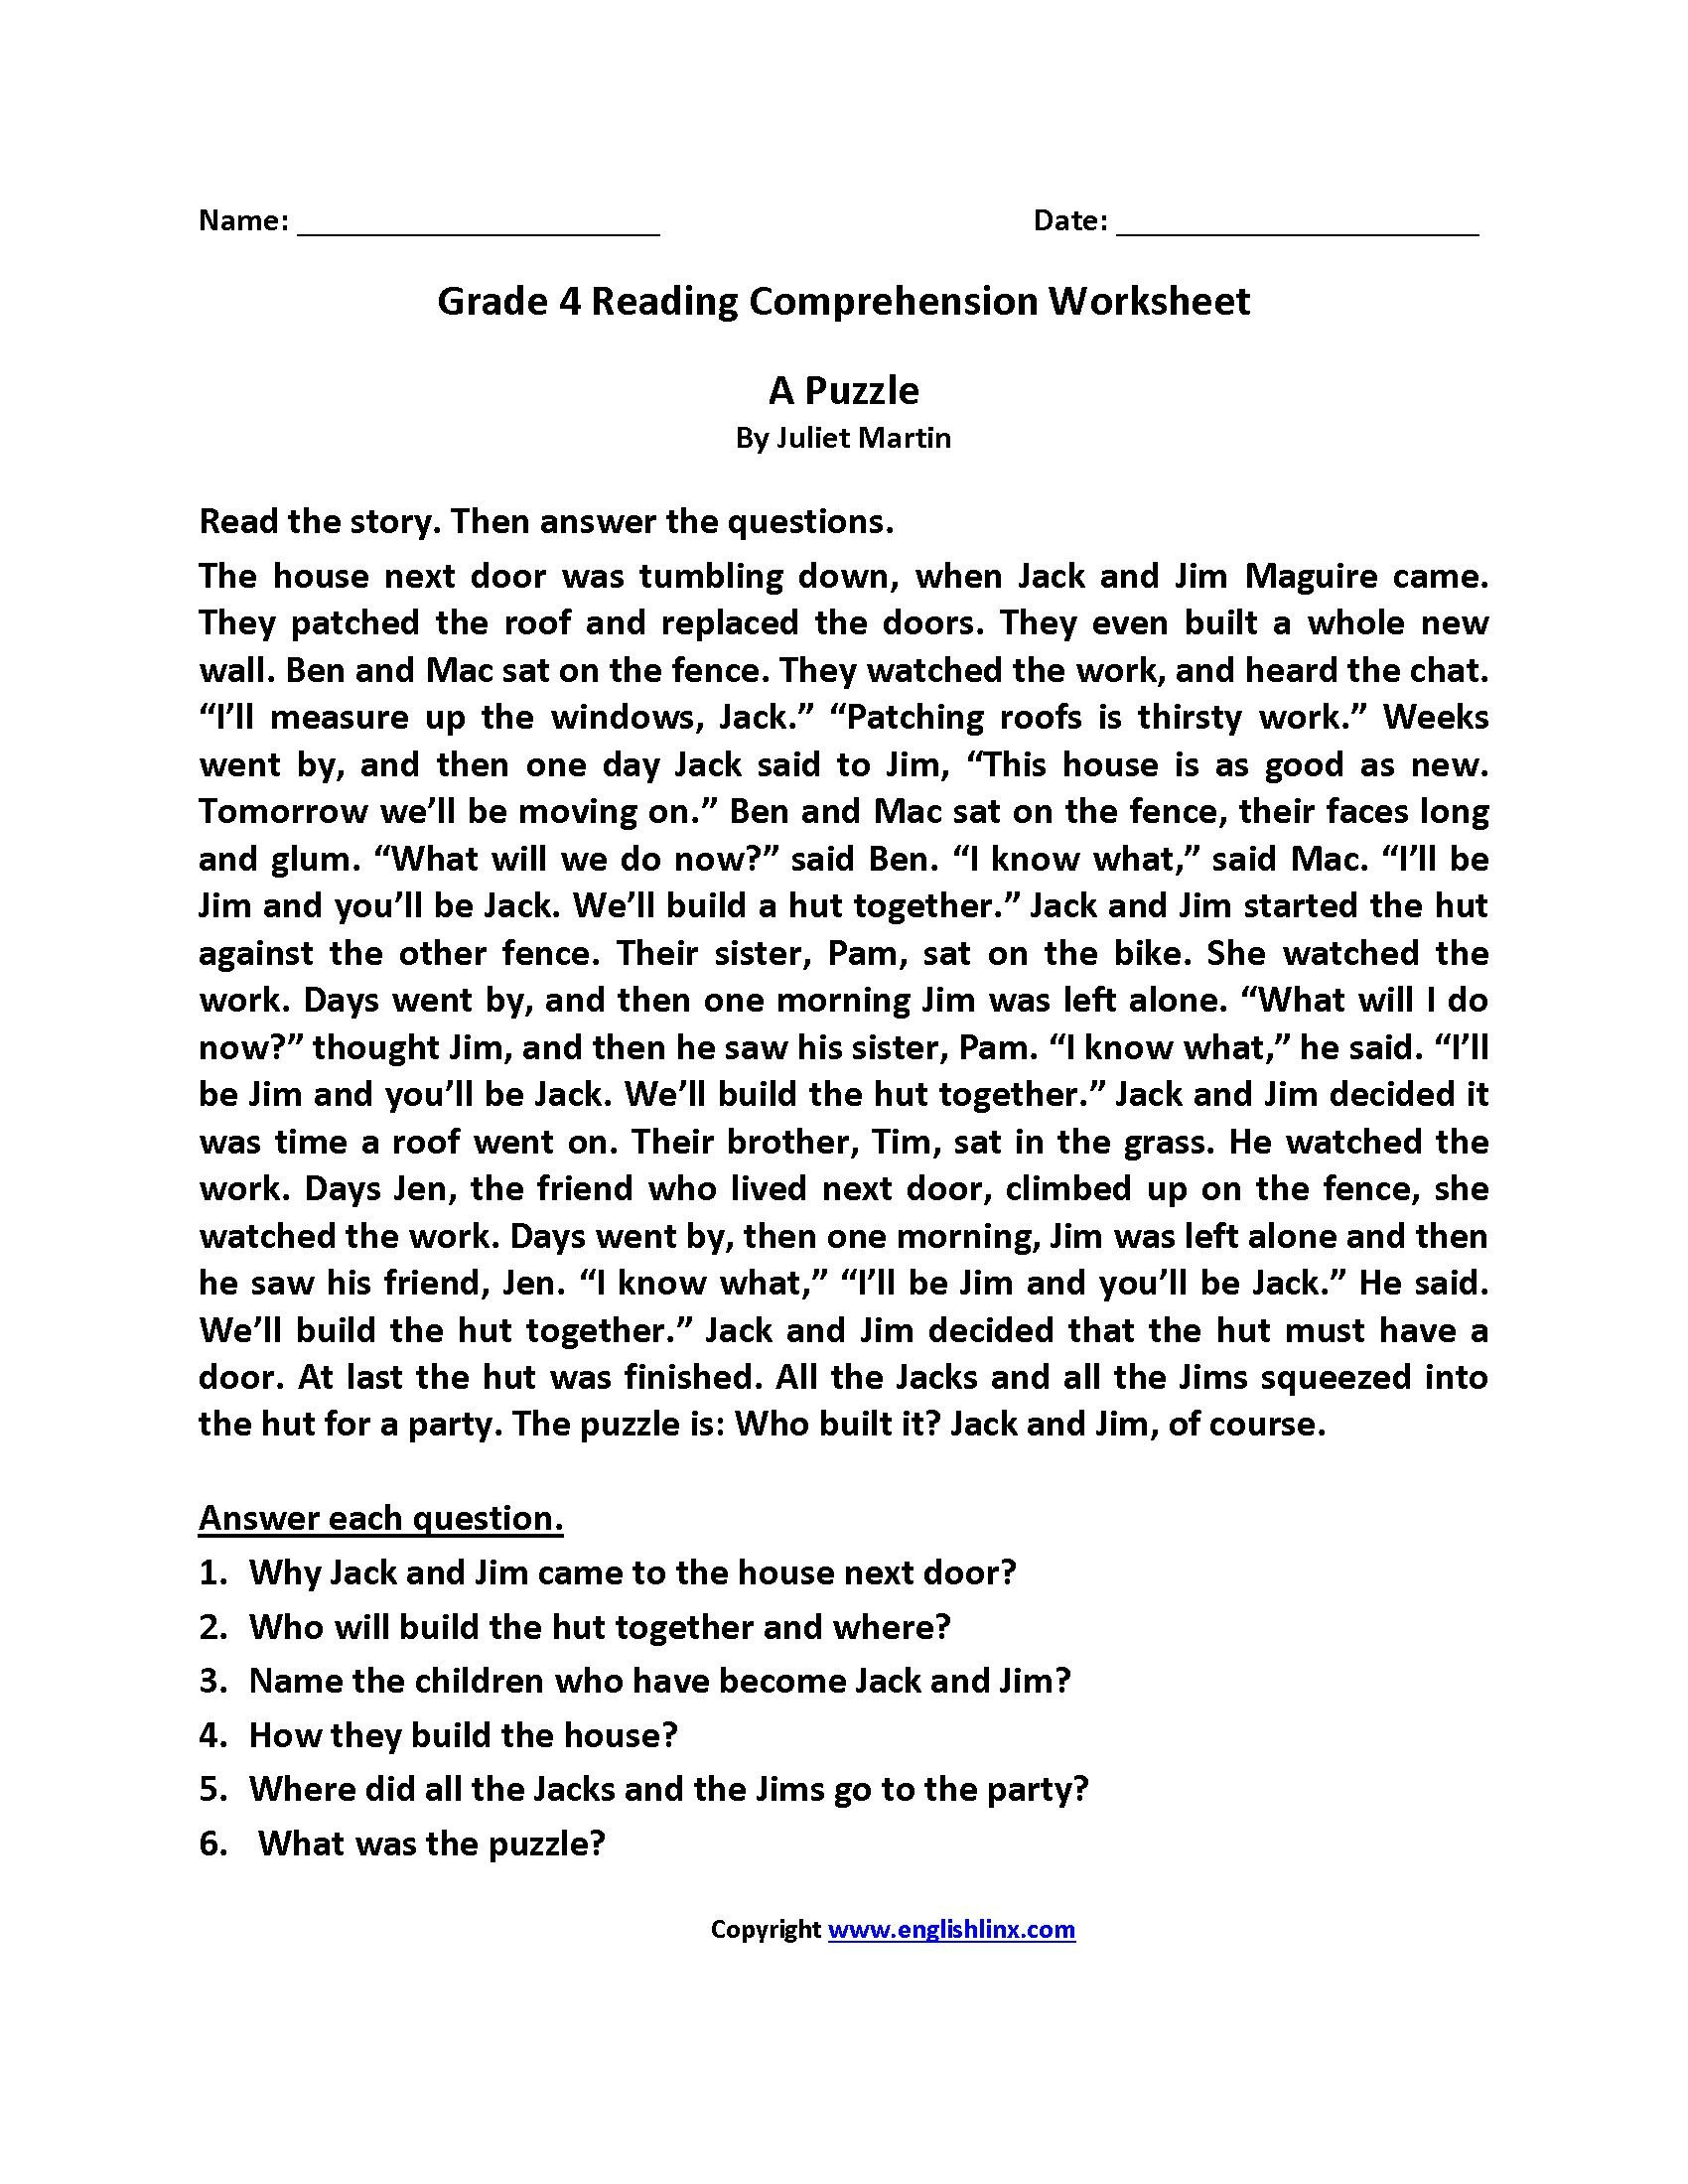 4Th Grade Reading Comprehension Worksheets Multiple Choice To Free Pertaining To Comprehension Worksheets For Grade 5